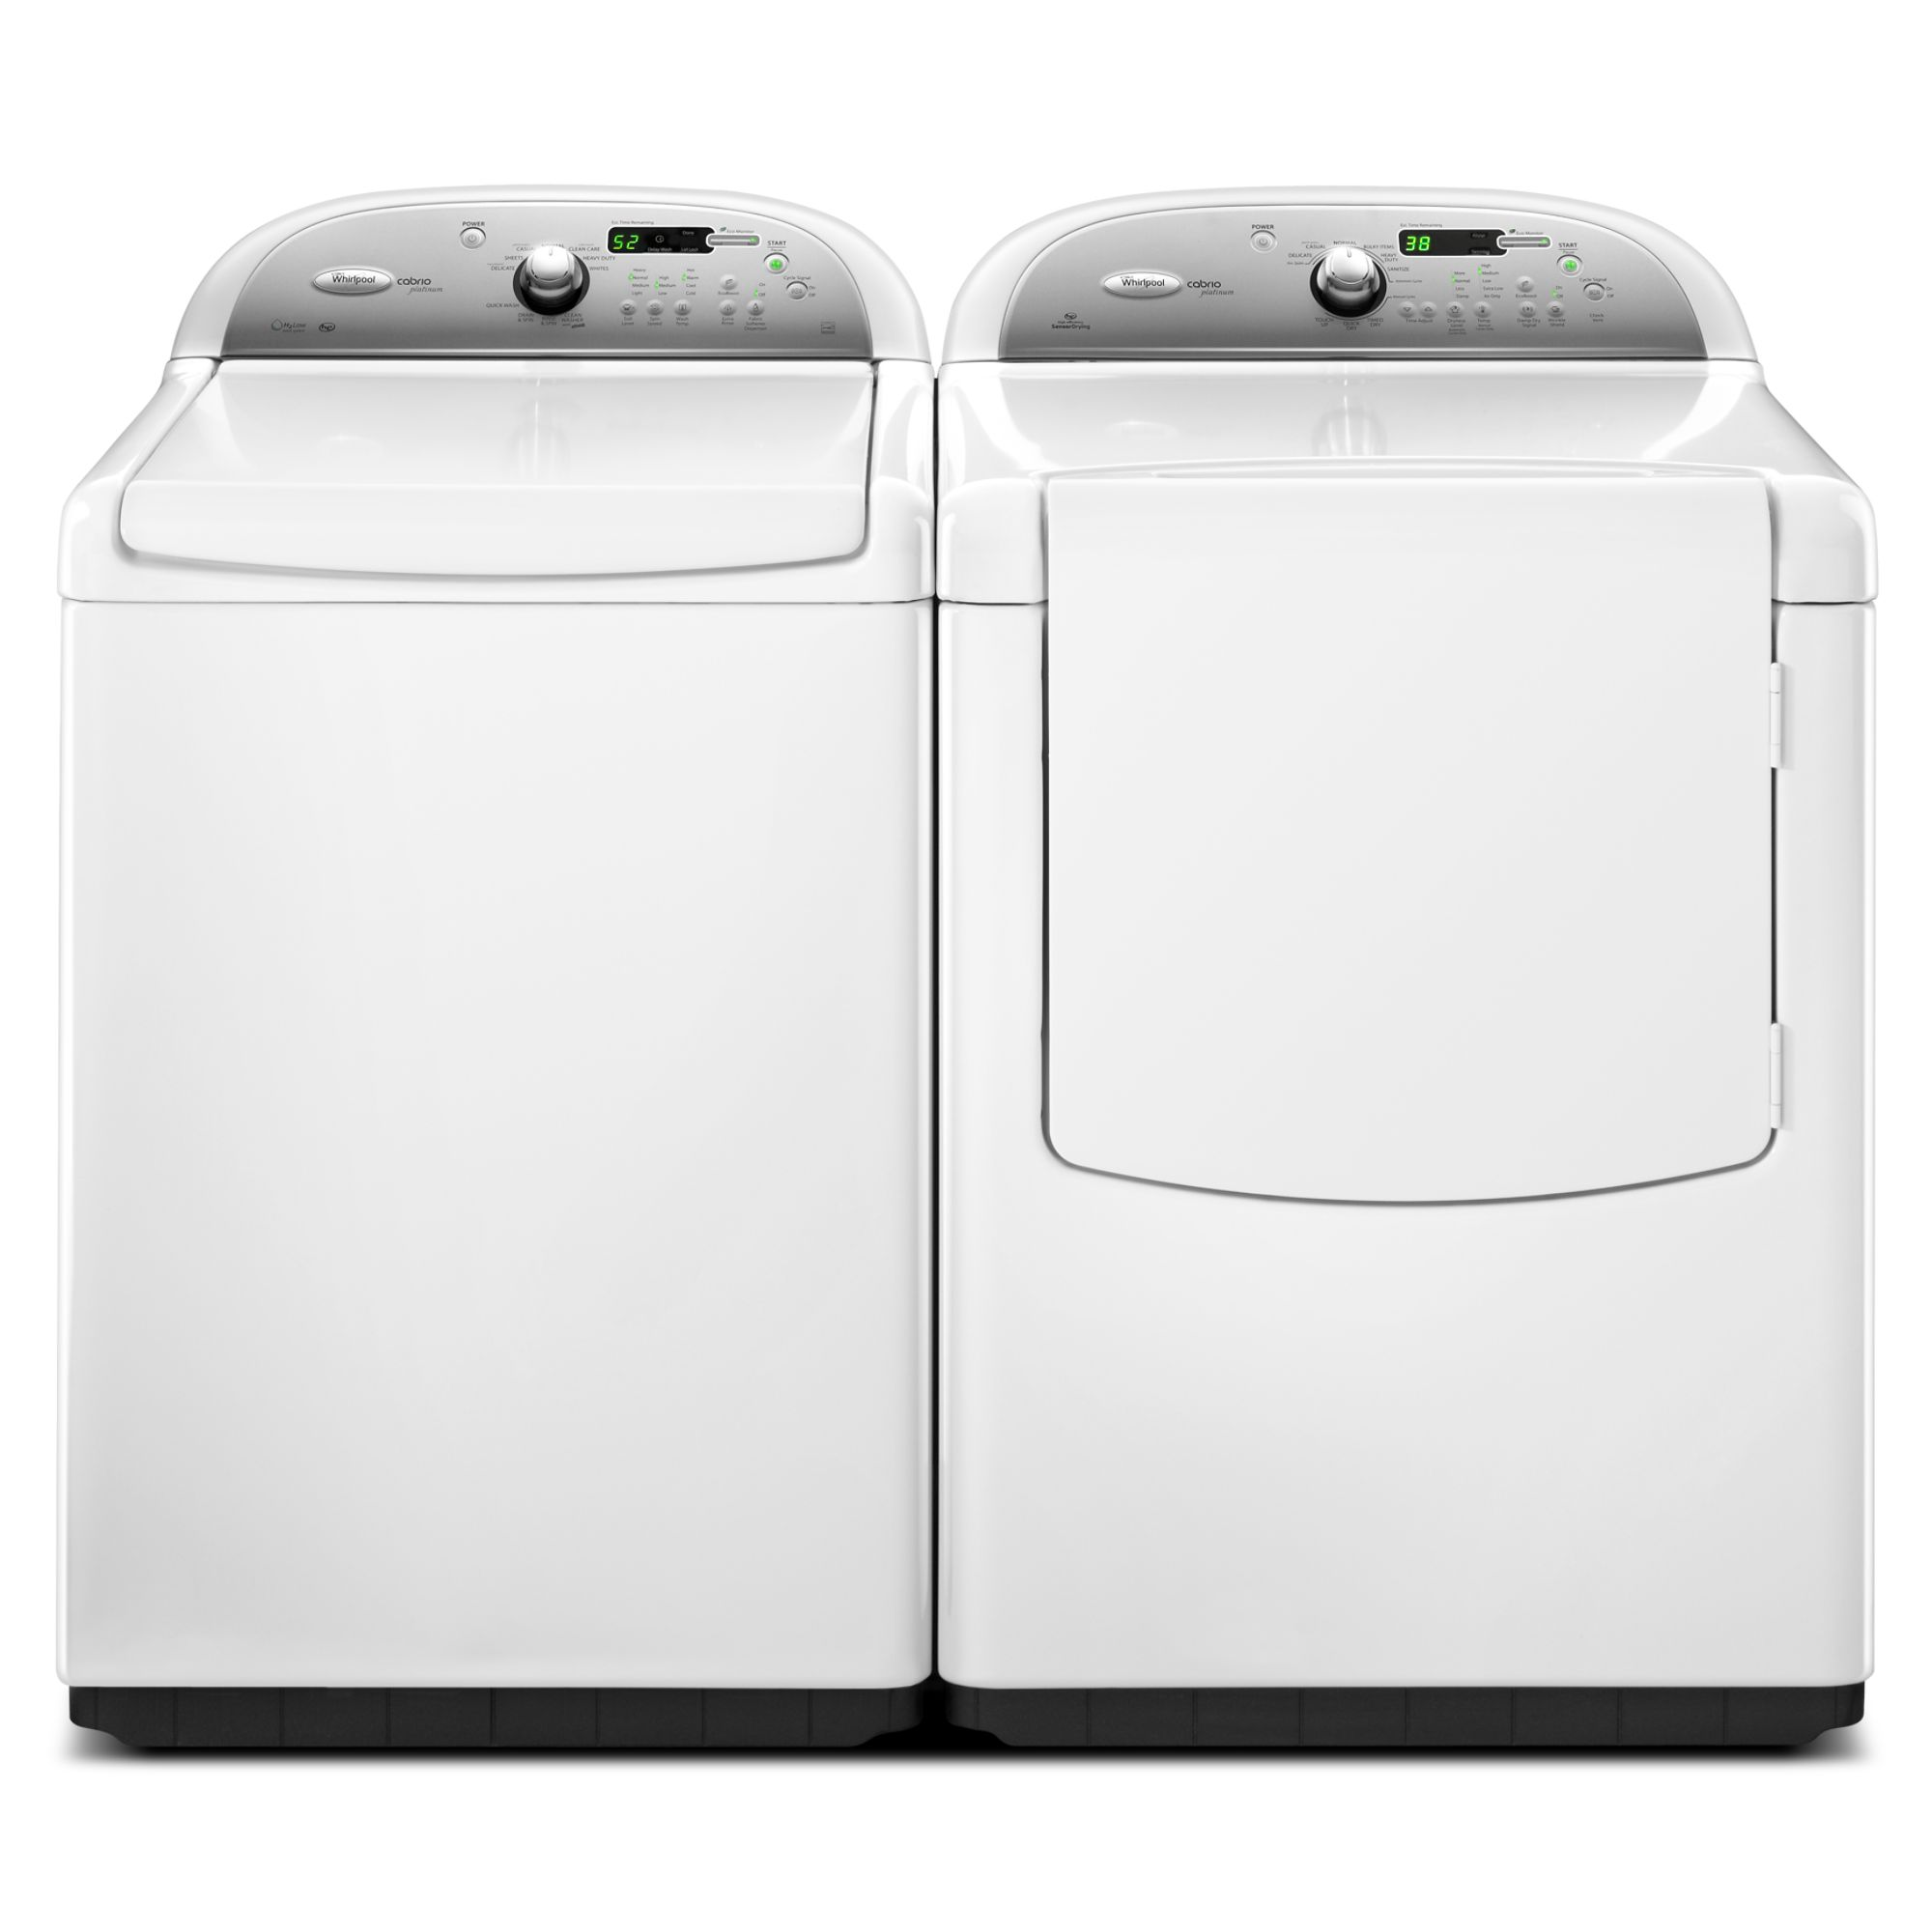 Whirlpool 7.6 cu. ft. Electric Dryer - White